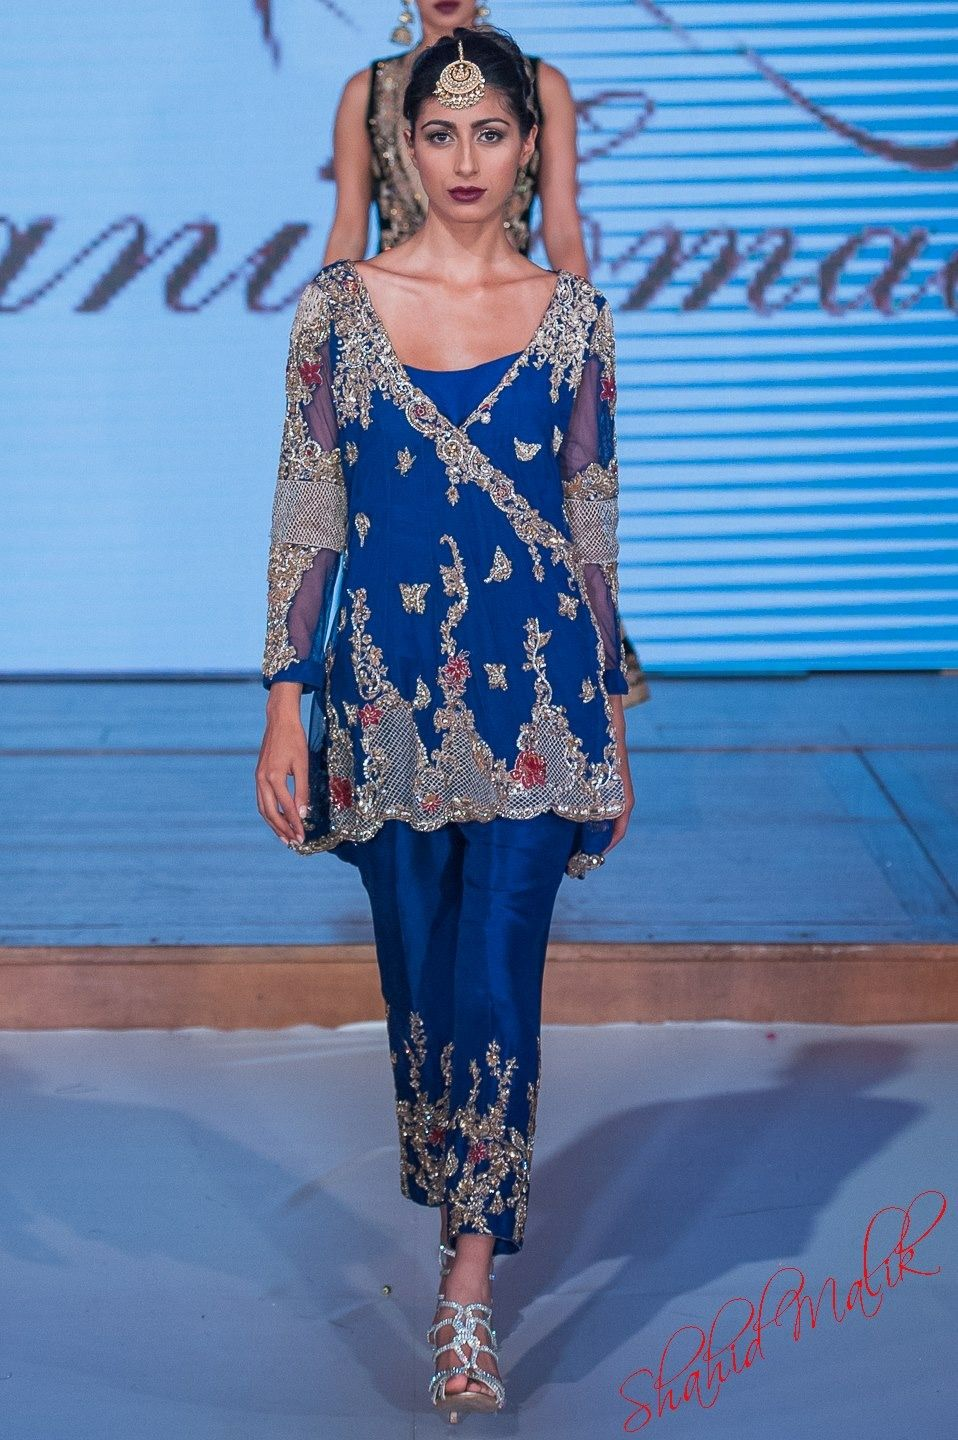 Pin by mona ghotra on Indian dresses | Pinterest | Indian dresses